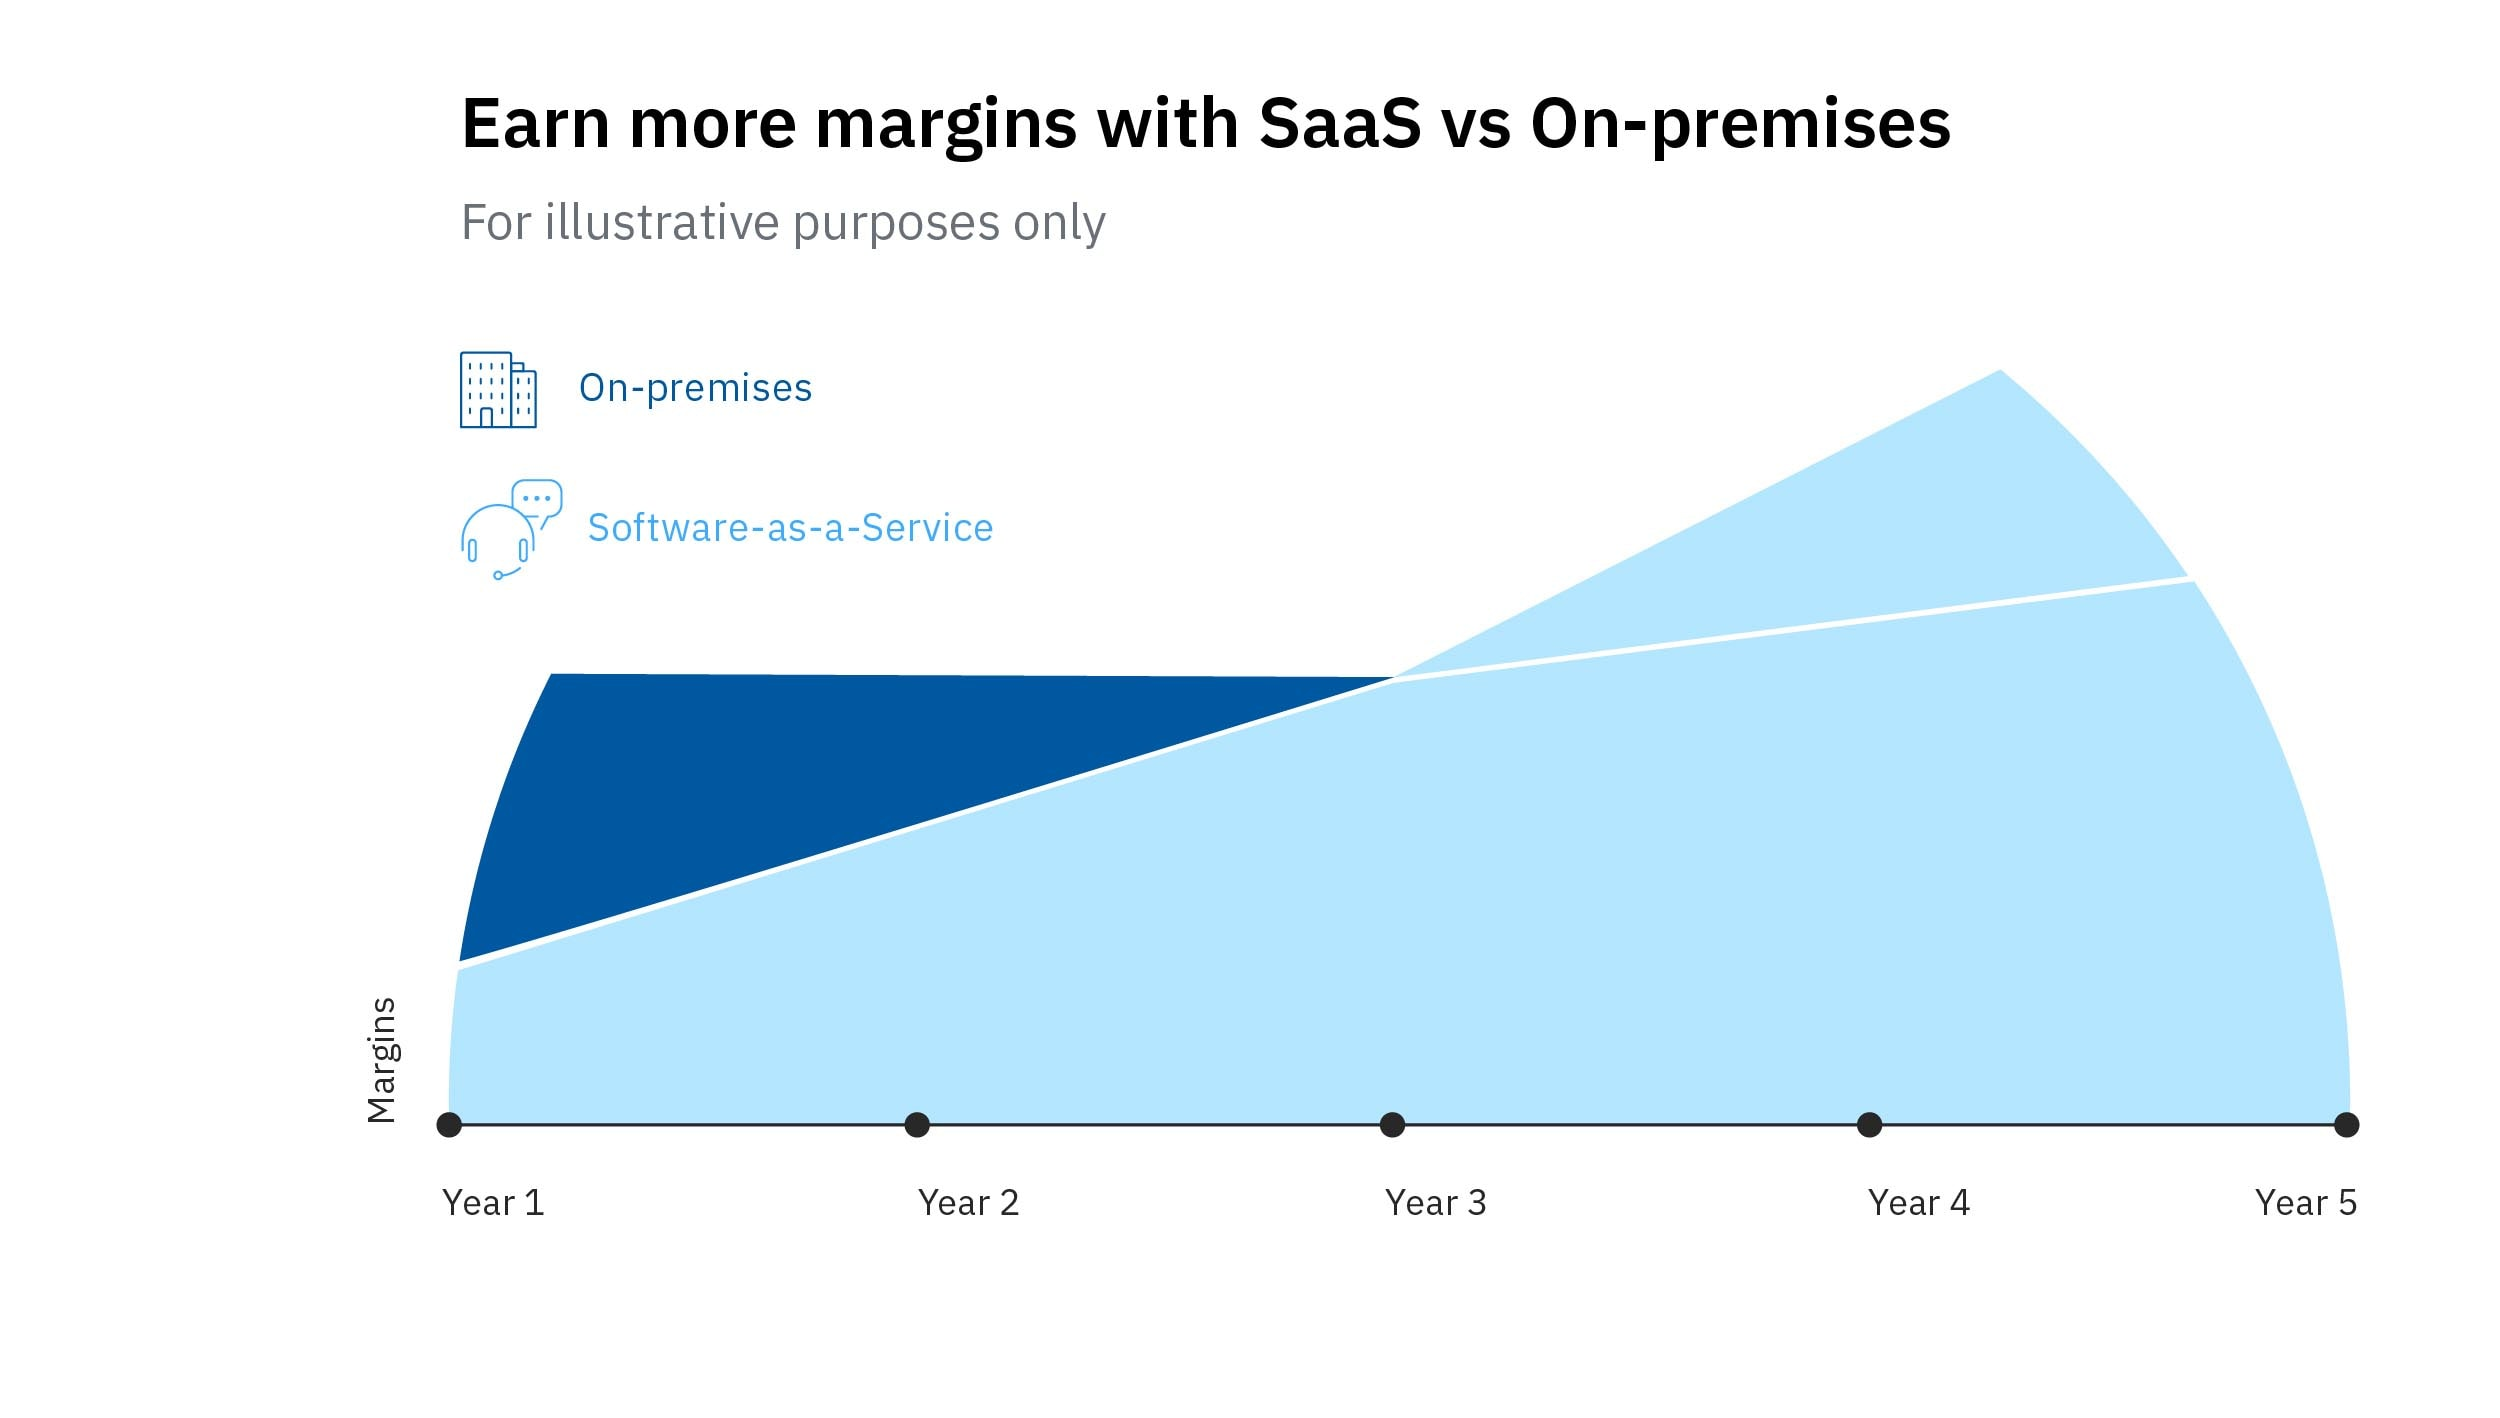 Comparison of on-premises vs SaaS margins.